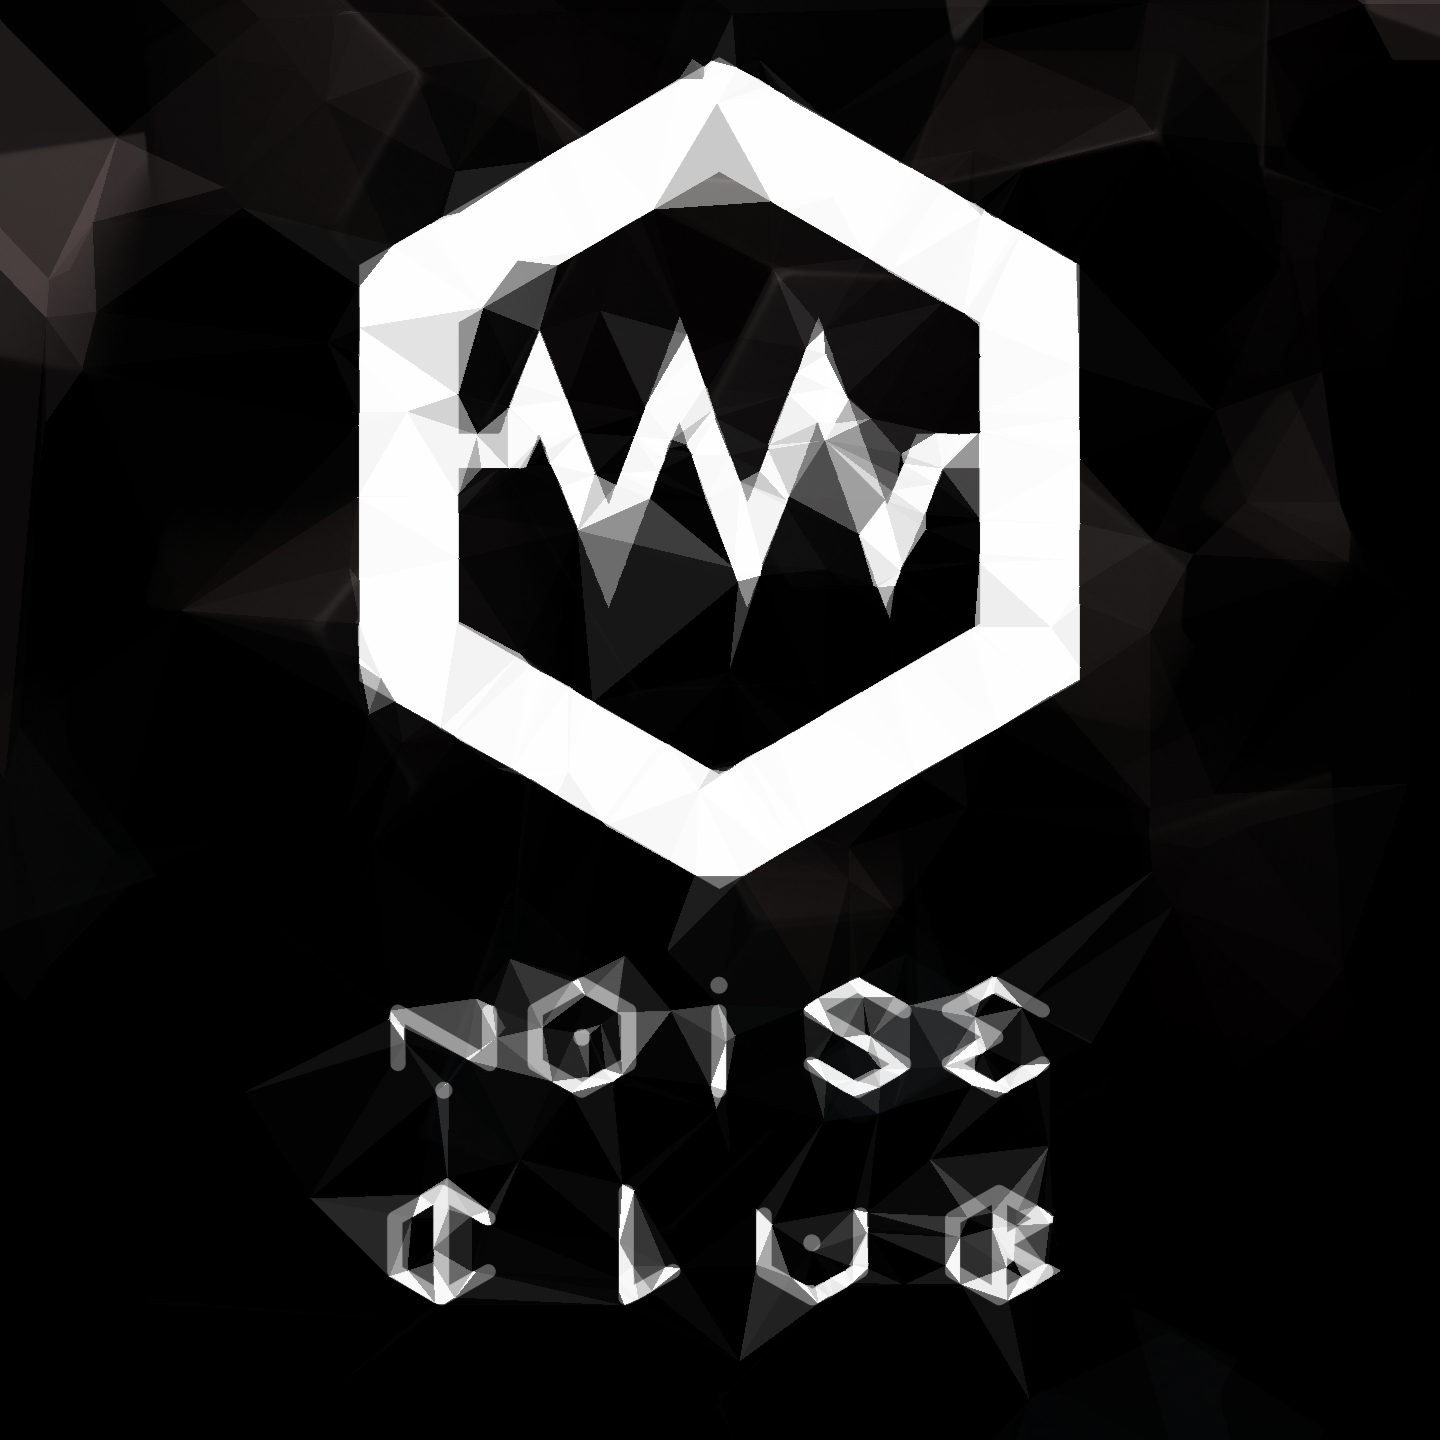 Noise Club July 13th